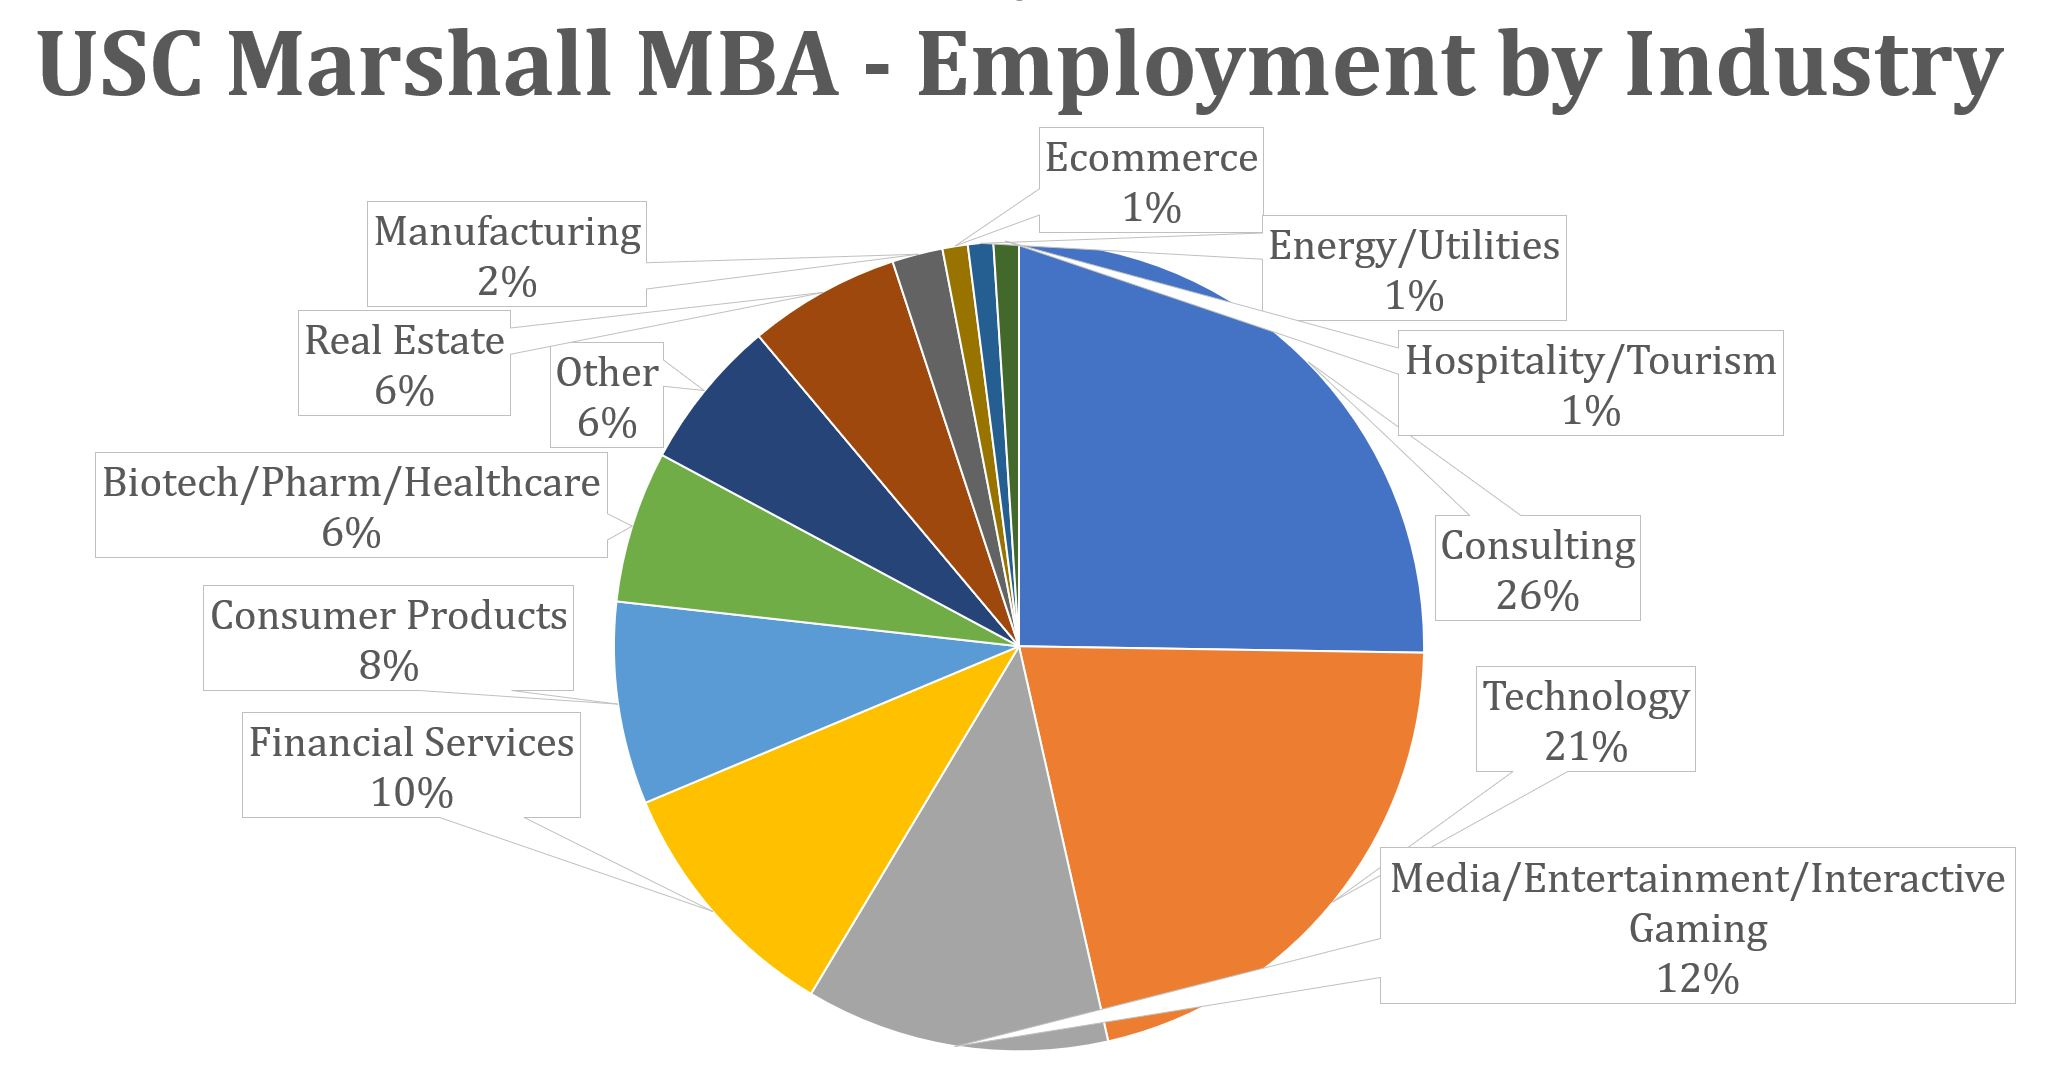 USC Marshall MBA - Employment by Industry